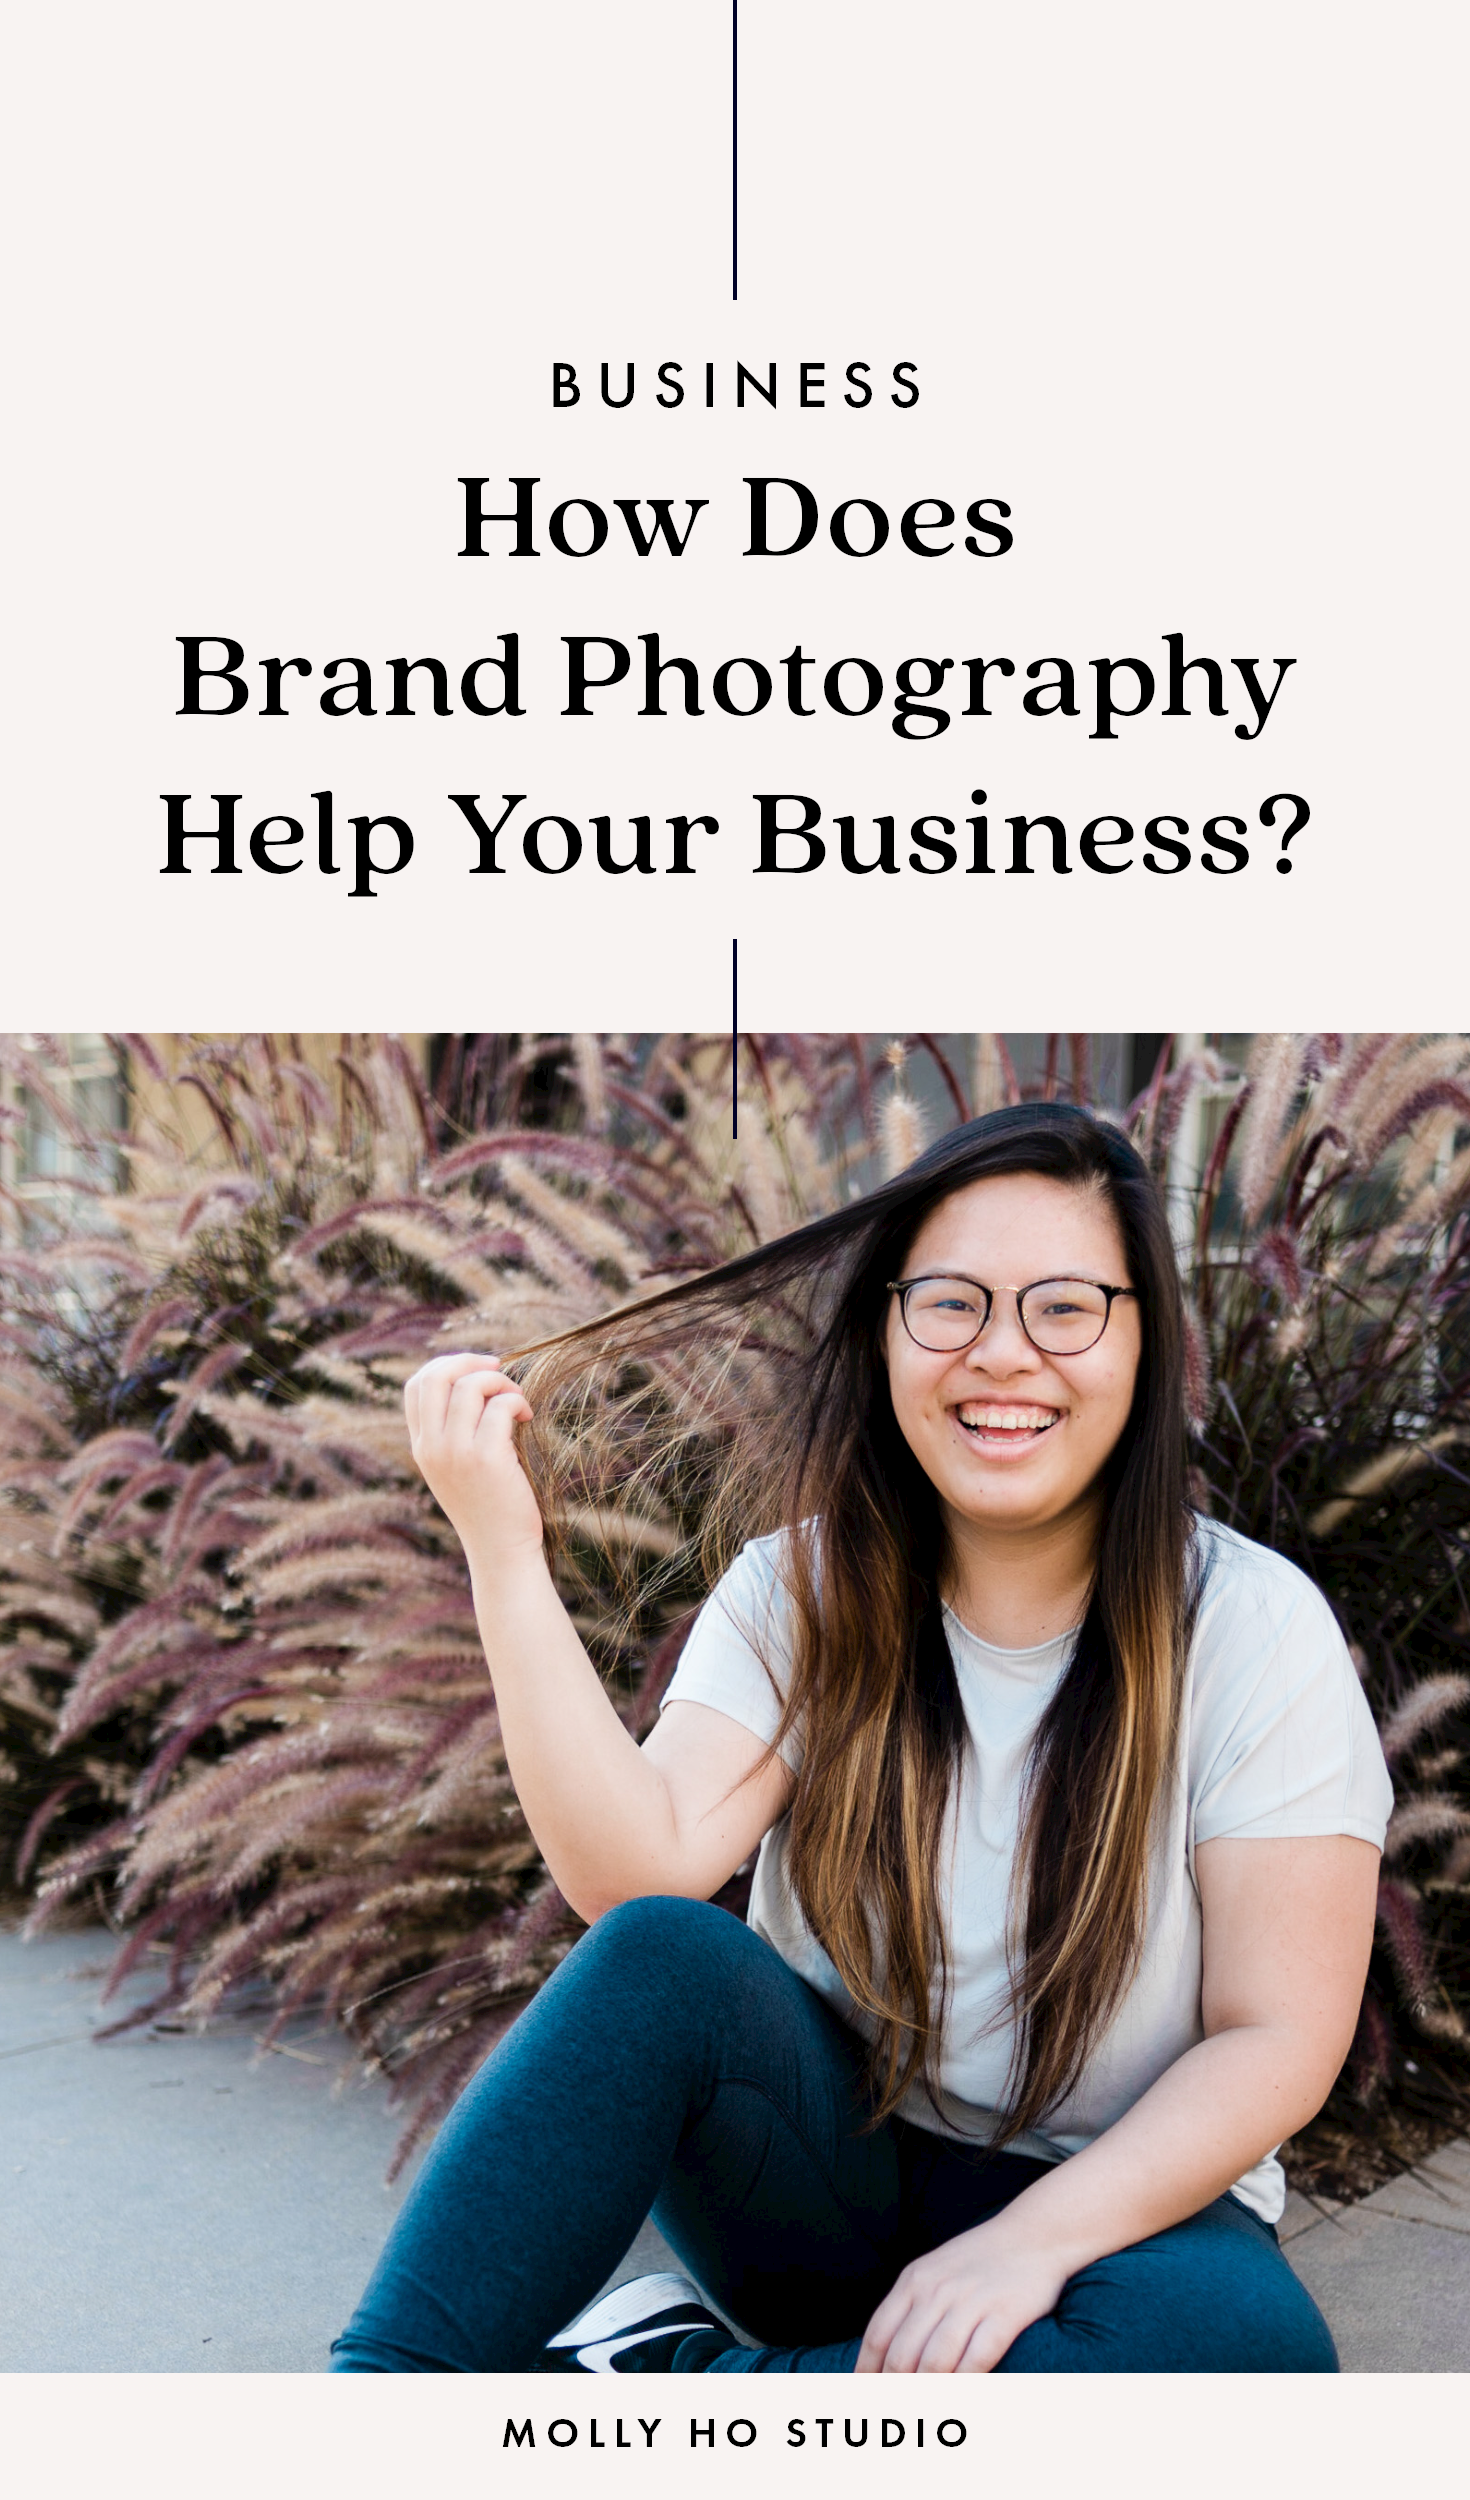 How Brand Photography Helps Your Business Grow | Why Your Business Needs Brand Photography | Branding and Business | How To Use Brand Photography To Grow Your Business | Should You Invest in Brand Photography | Is Brand Photography Important for Your Business | How To Brand Your Business | Personal Brands | Creative Entrepreneurship | Molly Ho Studio